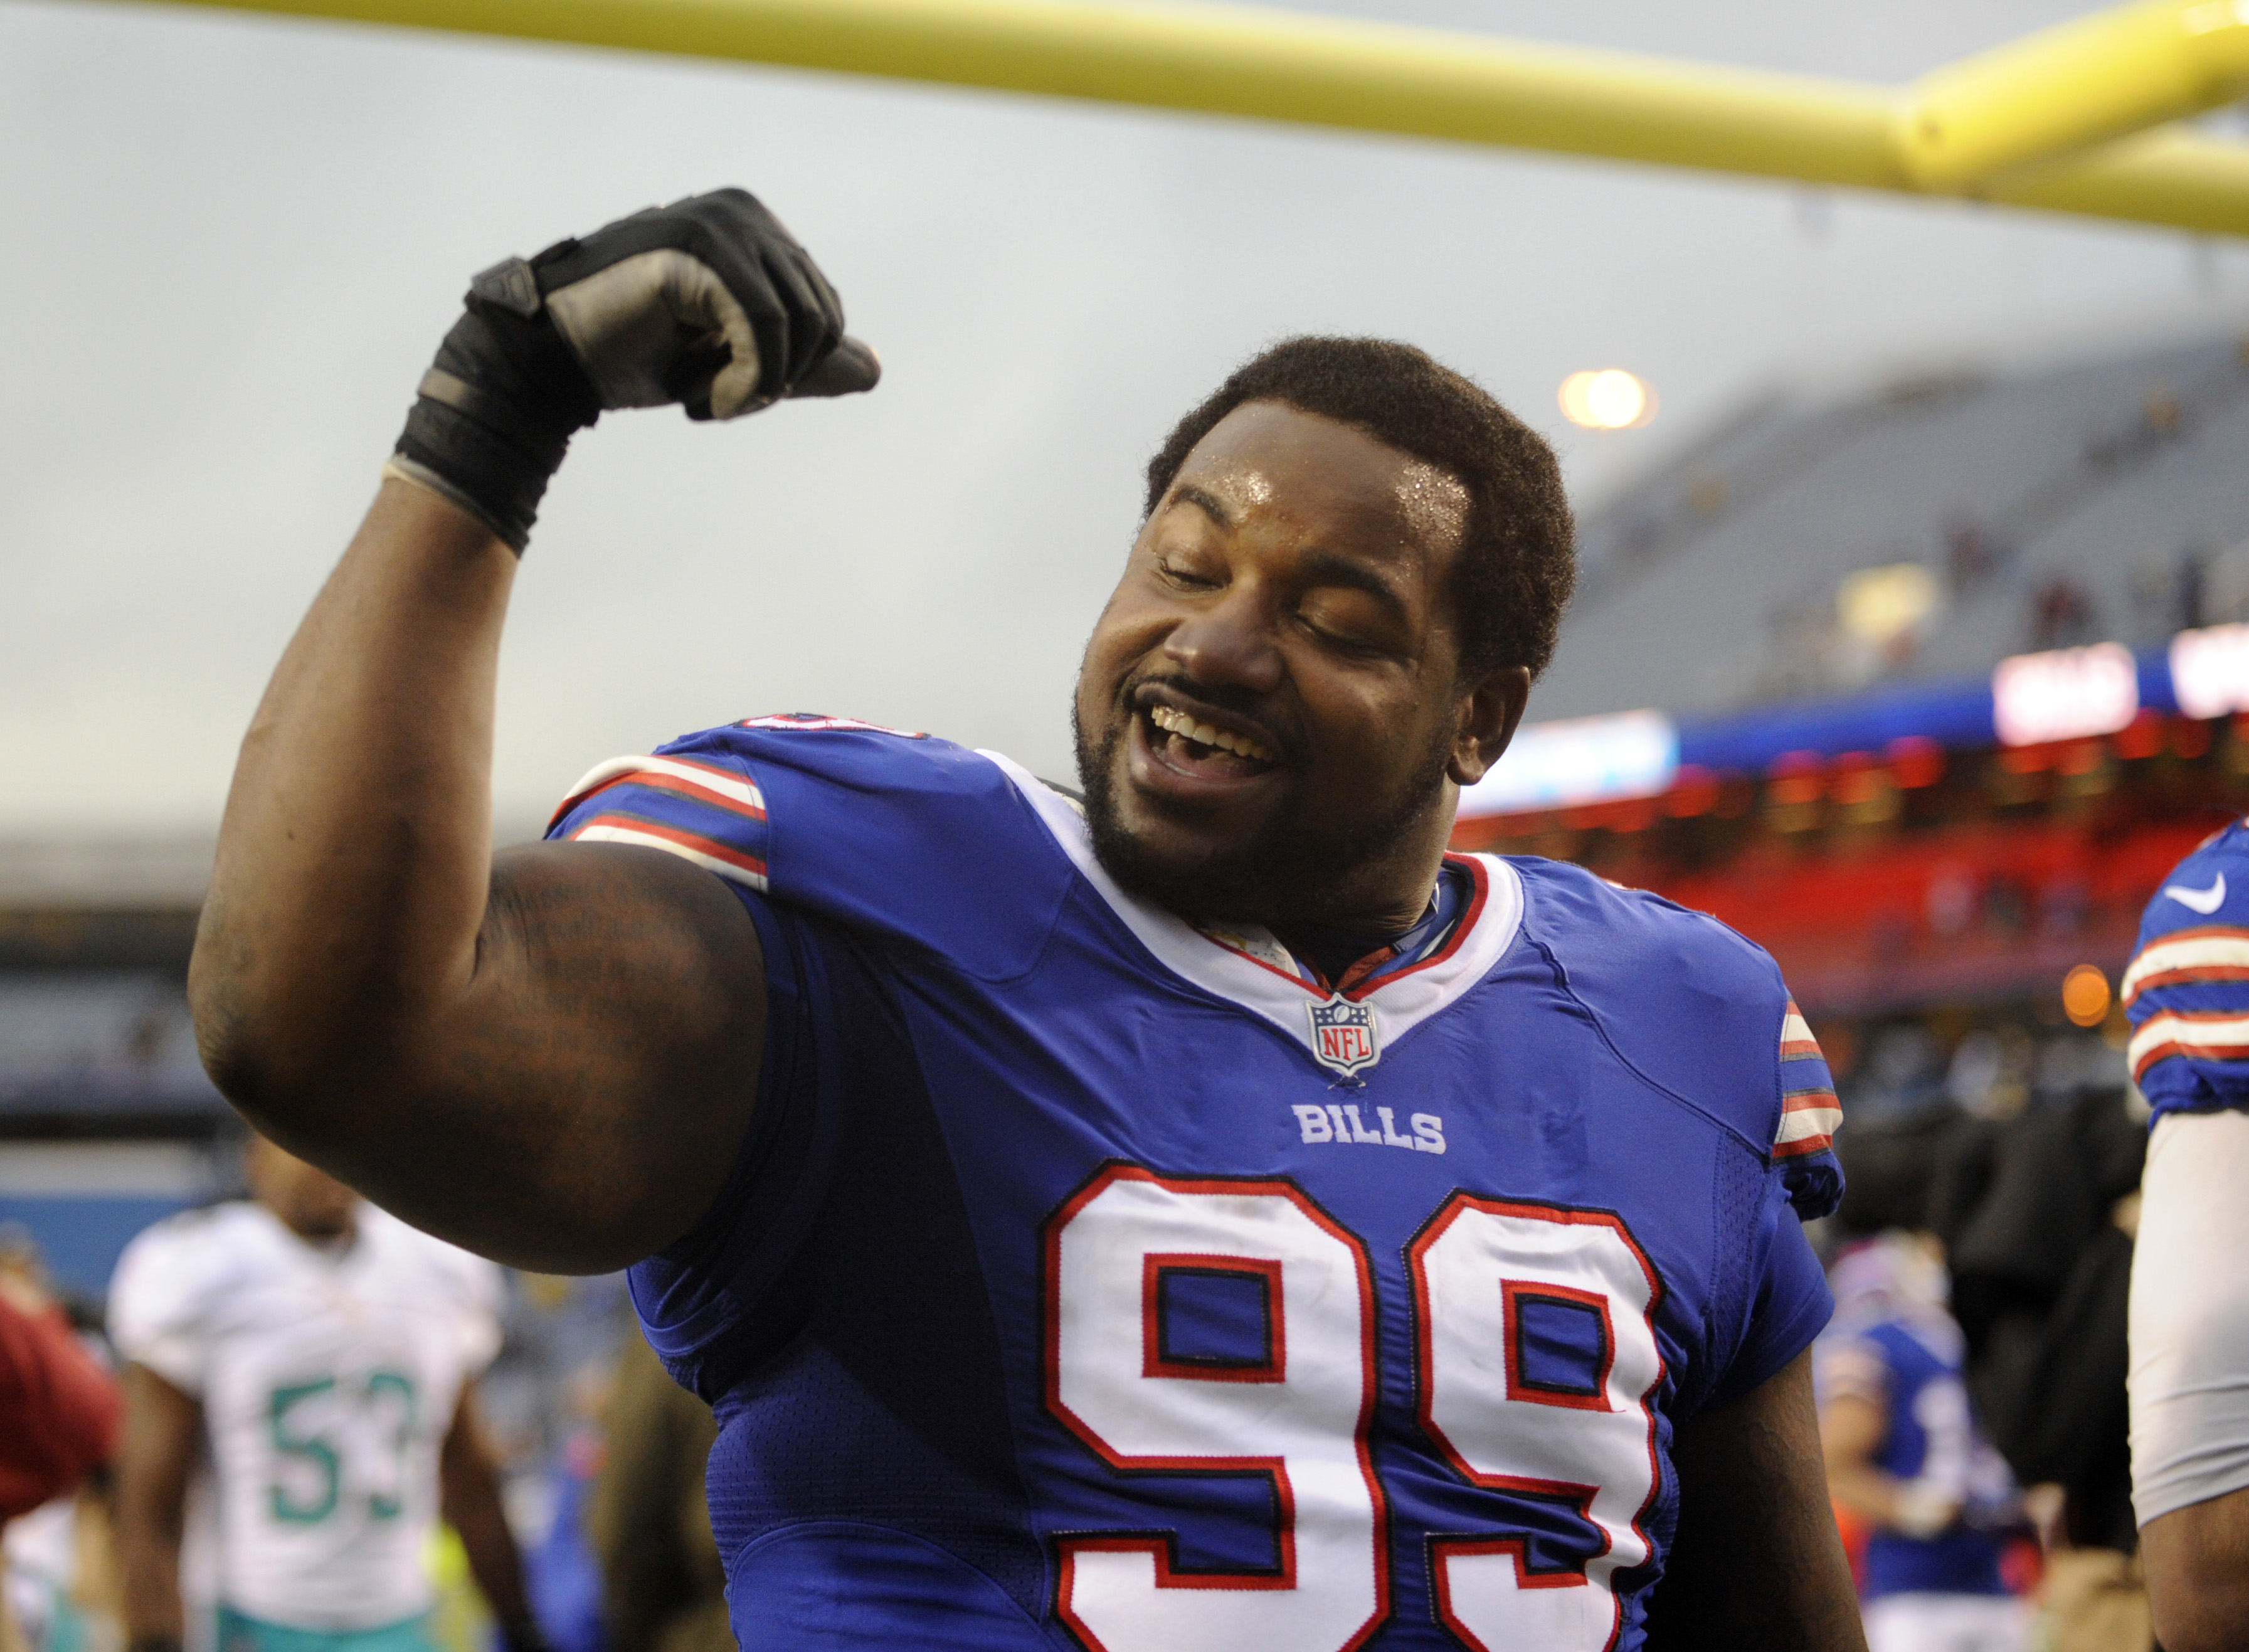 Marcell Dareus NFL star arrested on charges in Alabama